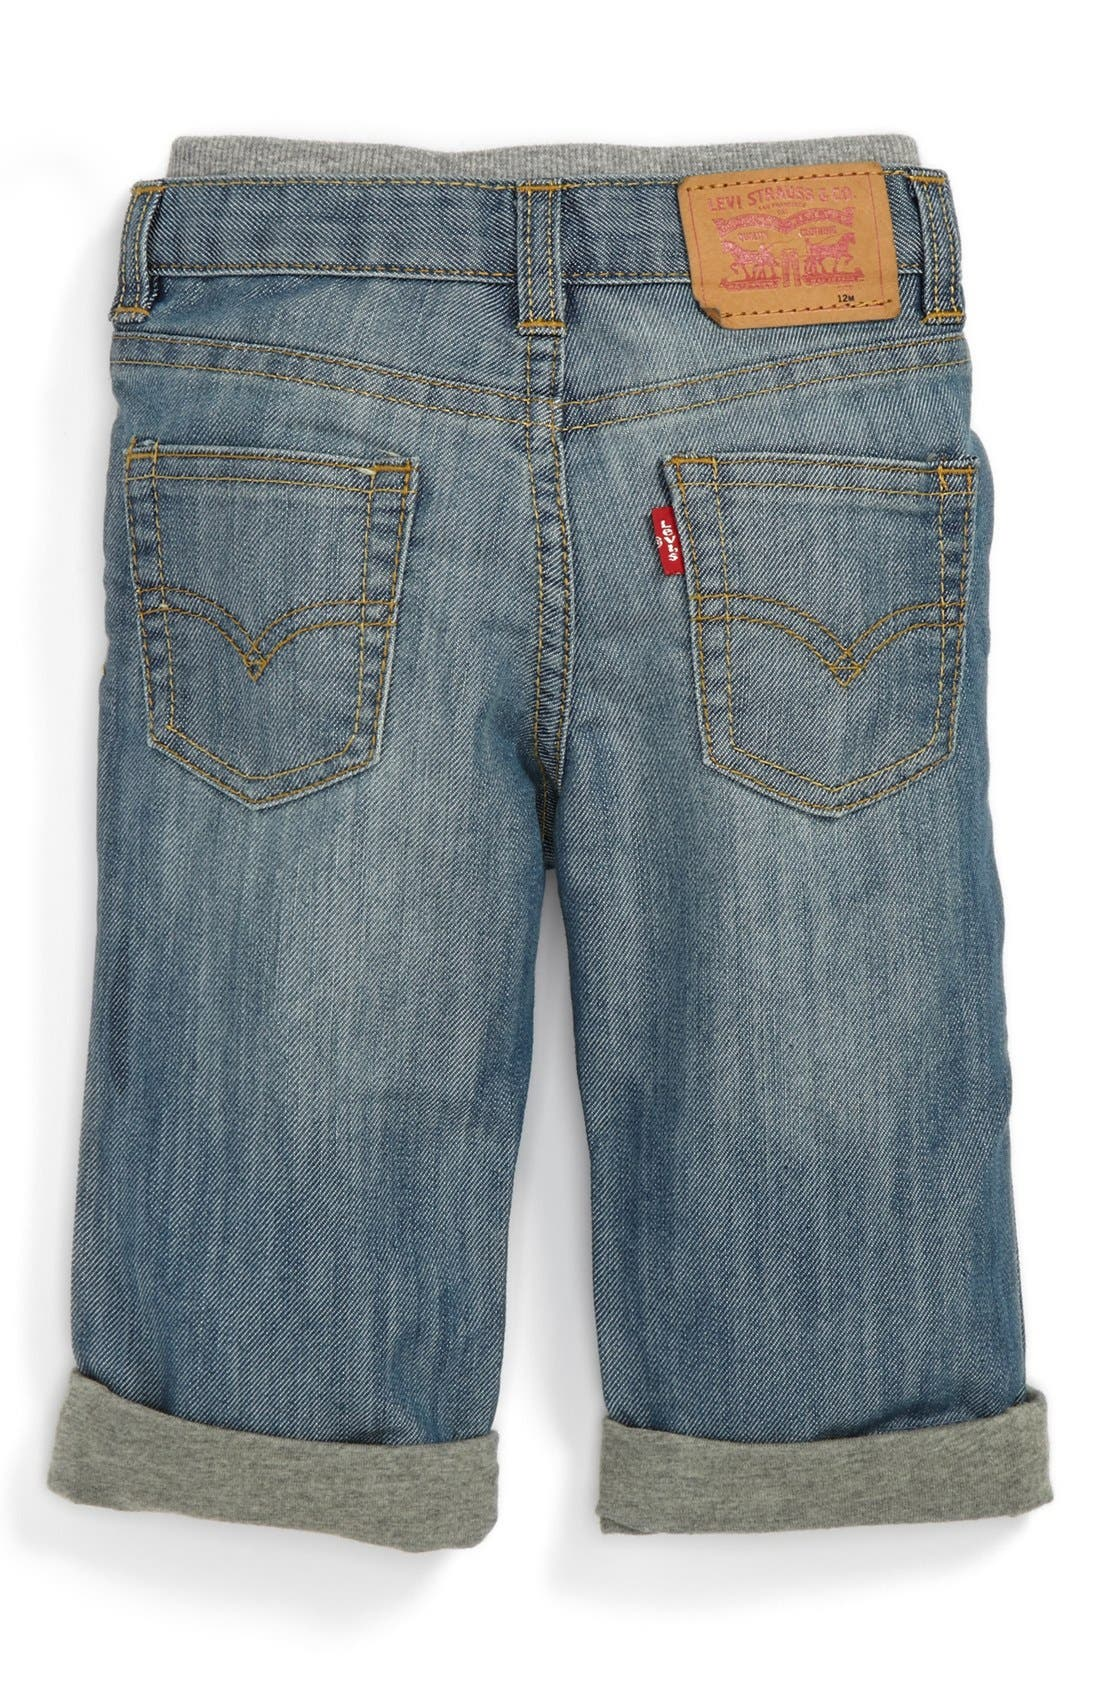 Alternate Image 1 Selected - Levi's '514™' Straight Leg Jeans (Toddler Boys)